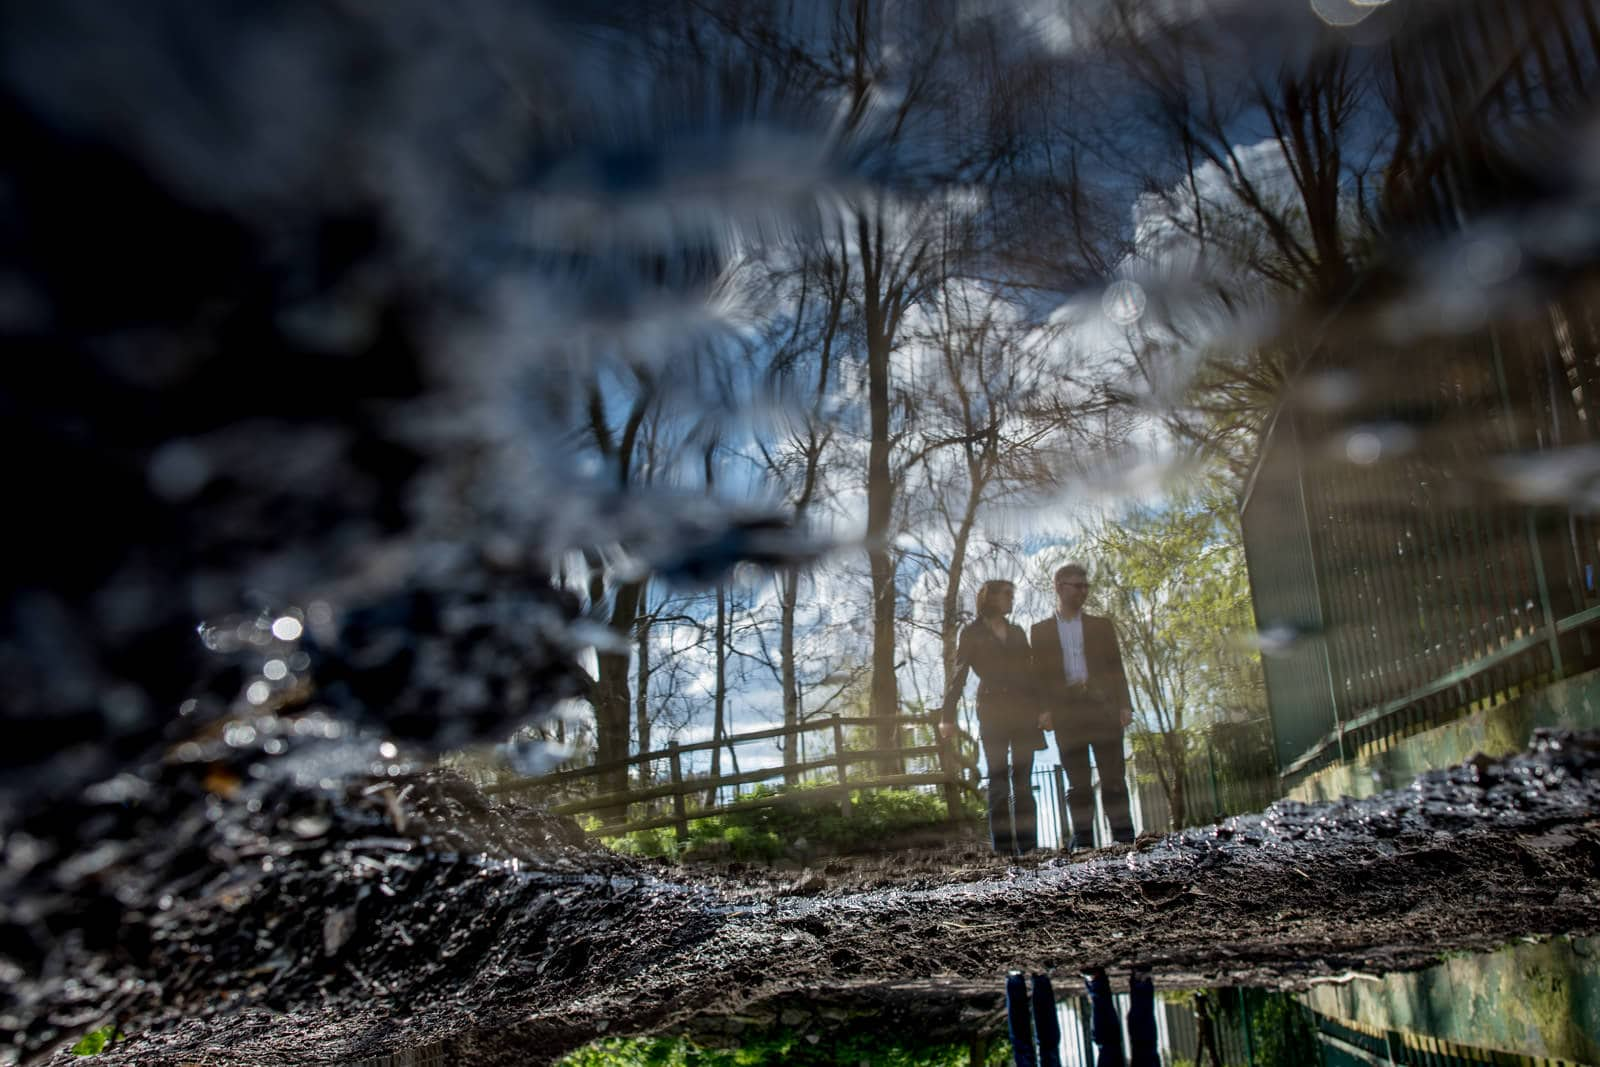 Reflection of couple in puddle at Mudchute Farm